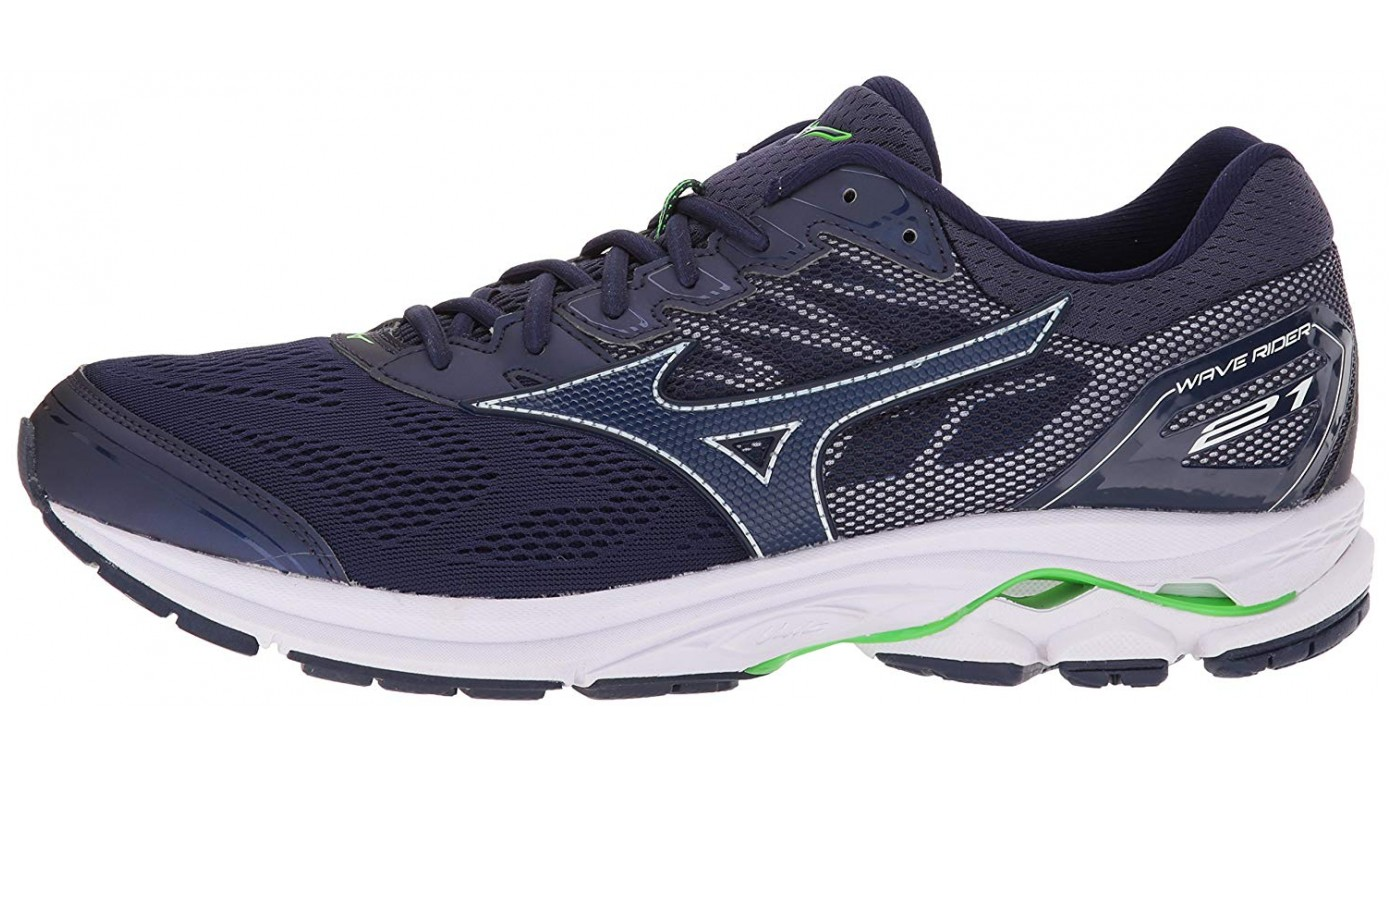 mizuno wave rider 21 mens uk youth edition